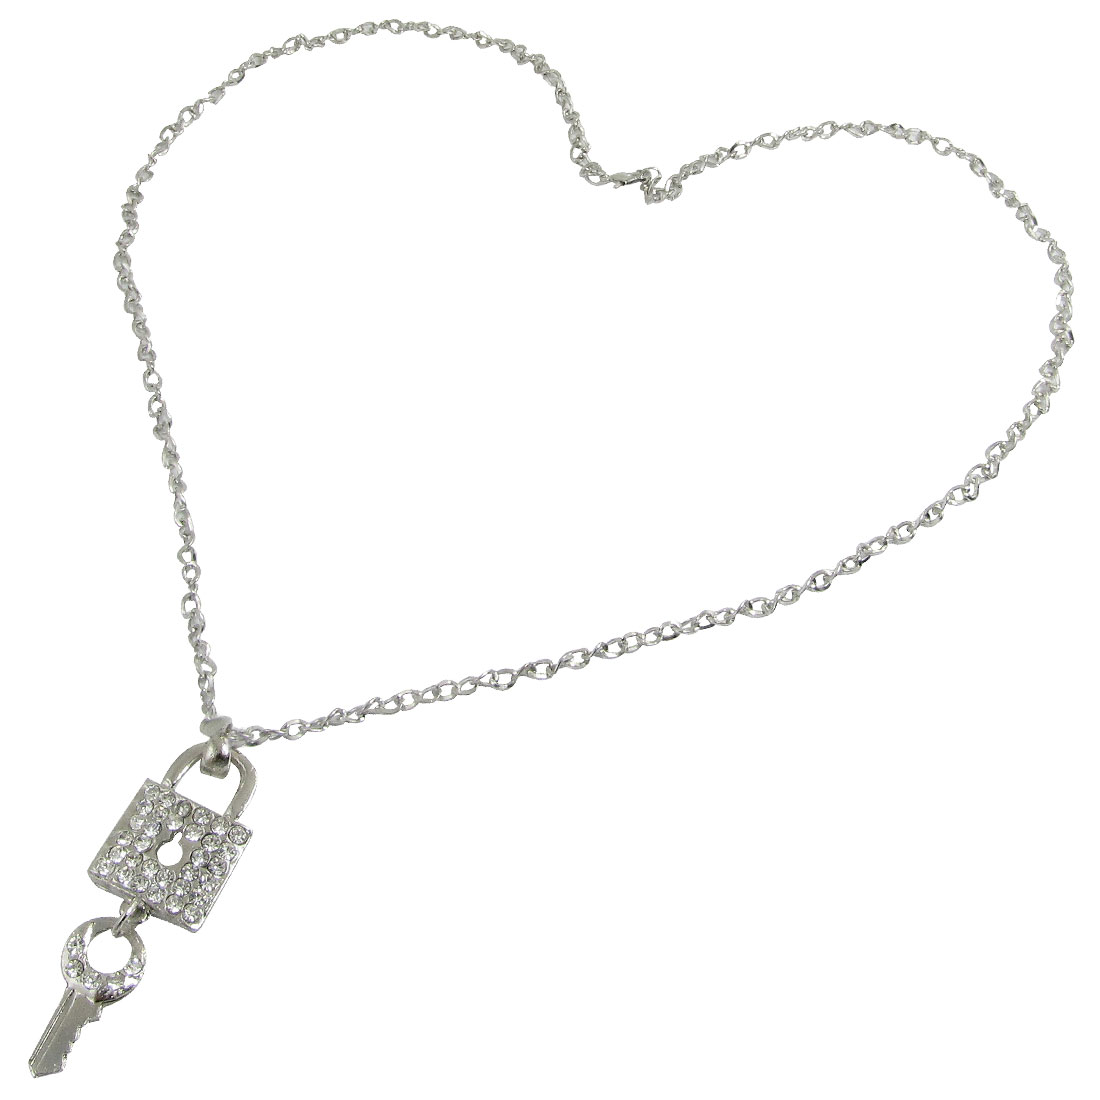 Rhinestone Inlaid Key Lock Lobster Clasps Chain Necklace Silver Tone